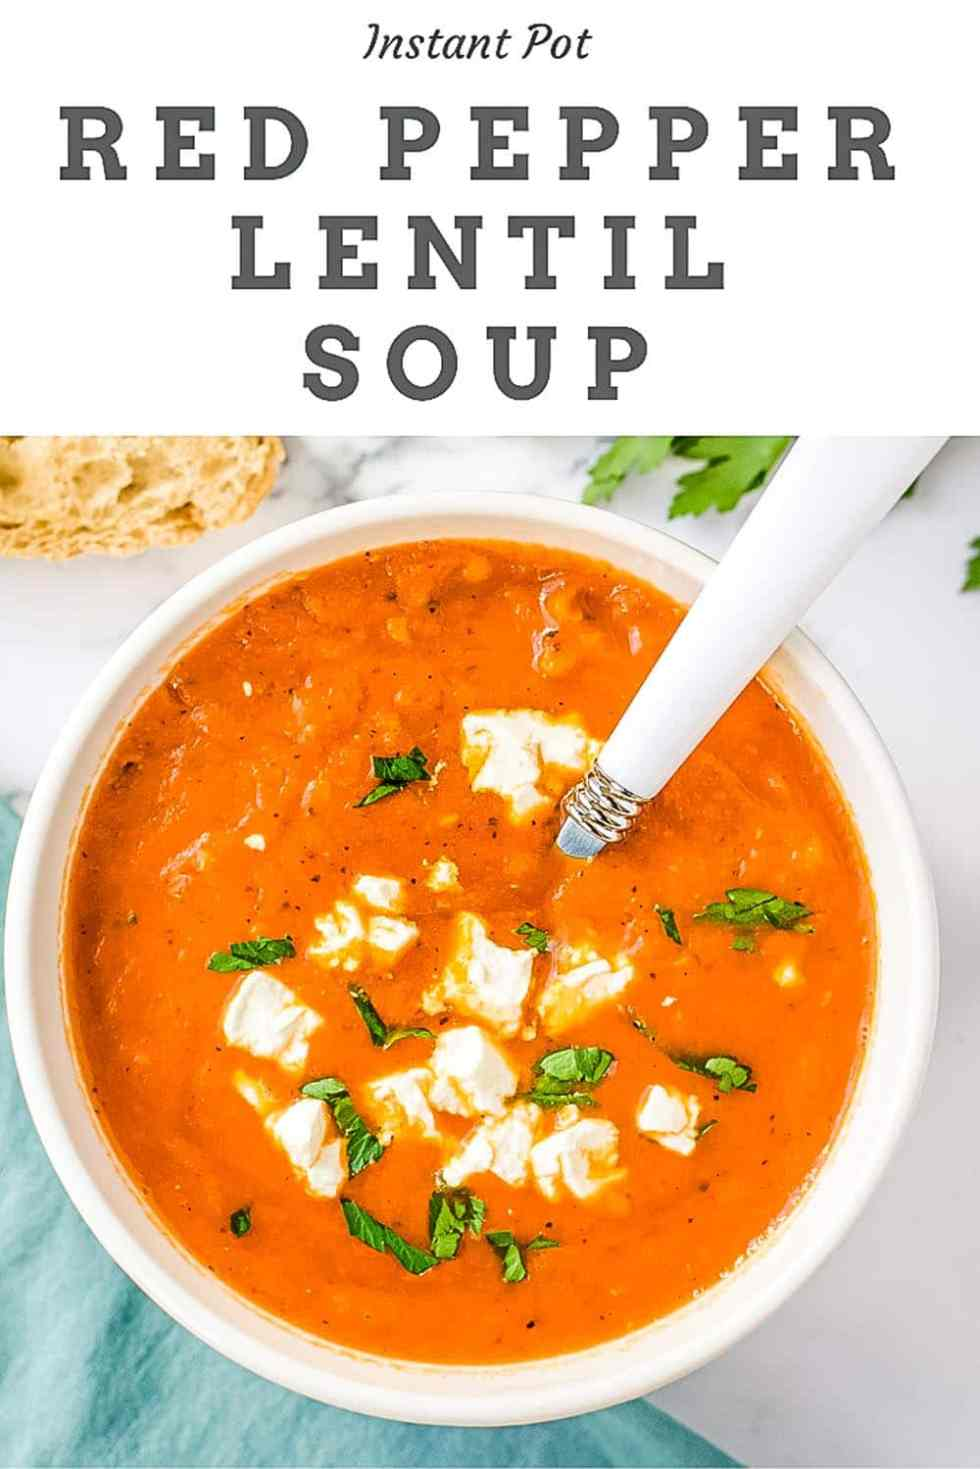 Roasted red pepper tomato soup is a warm, healthy, and hearty meal on a cold winters night. Roasted red peppers and lentils loaded with protein, vitamins and minerals will leave your body happy, while the taste will leave your taste buds happy. Made in an Instant Pot or other pressure cooker, it's ready to go in just 30 minutes. Puree it to make it a bisque or leave chunky- the choice is yours! via @mrsmajorhoff